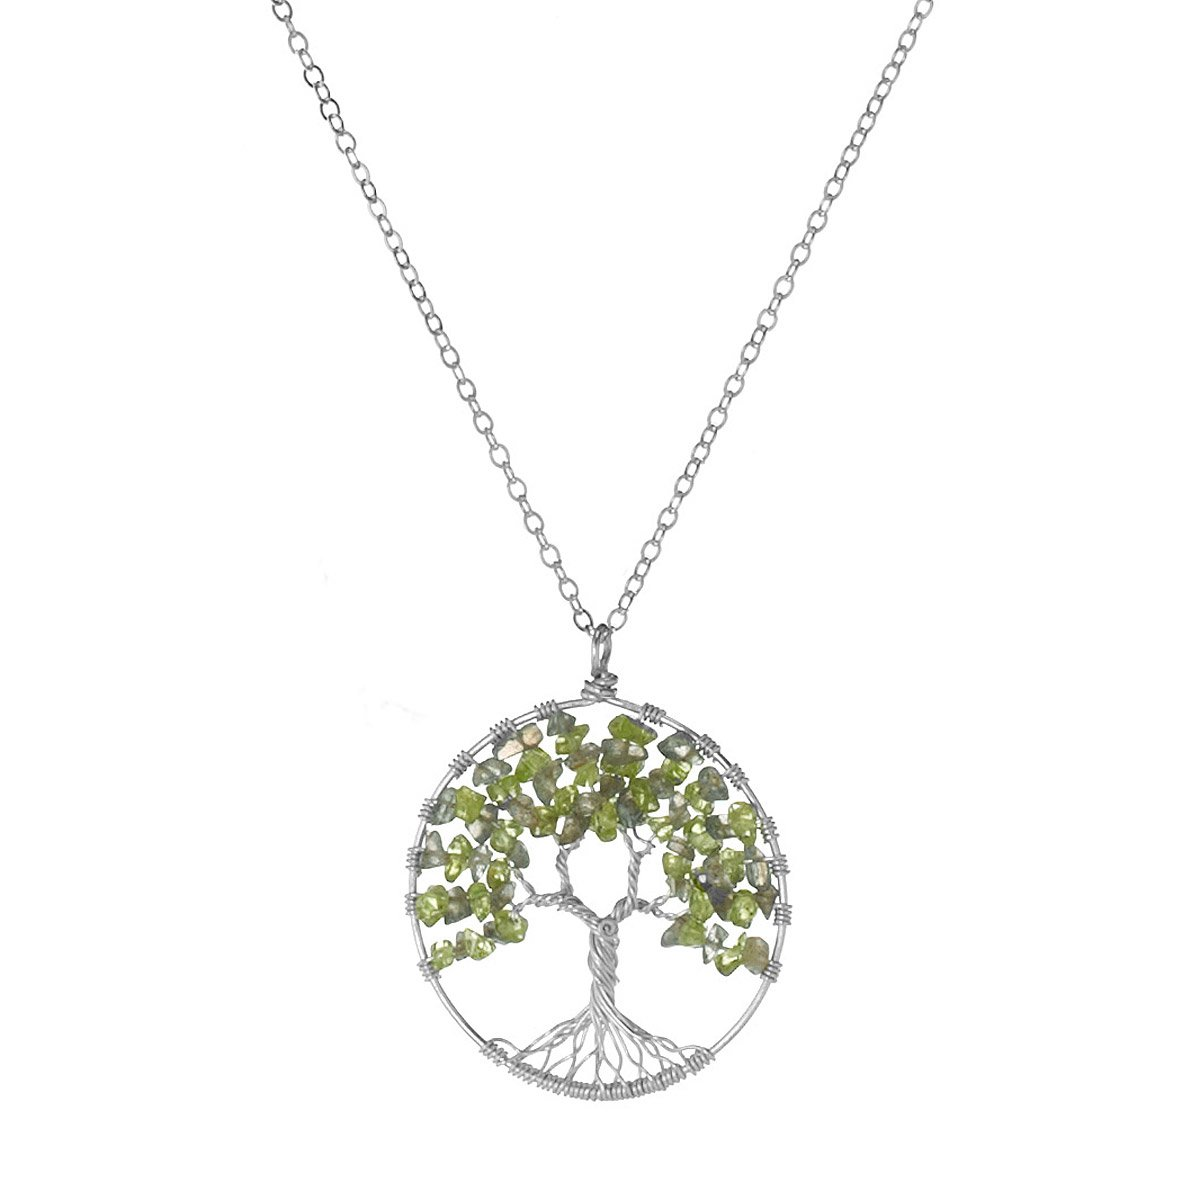 silver of design sterling webstore necklace product life number pendant h d samuel tree